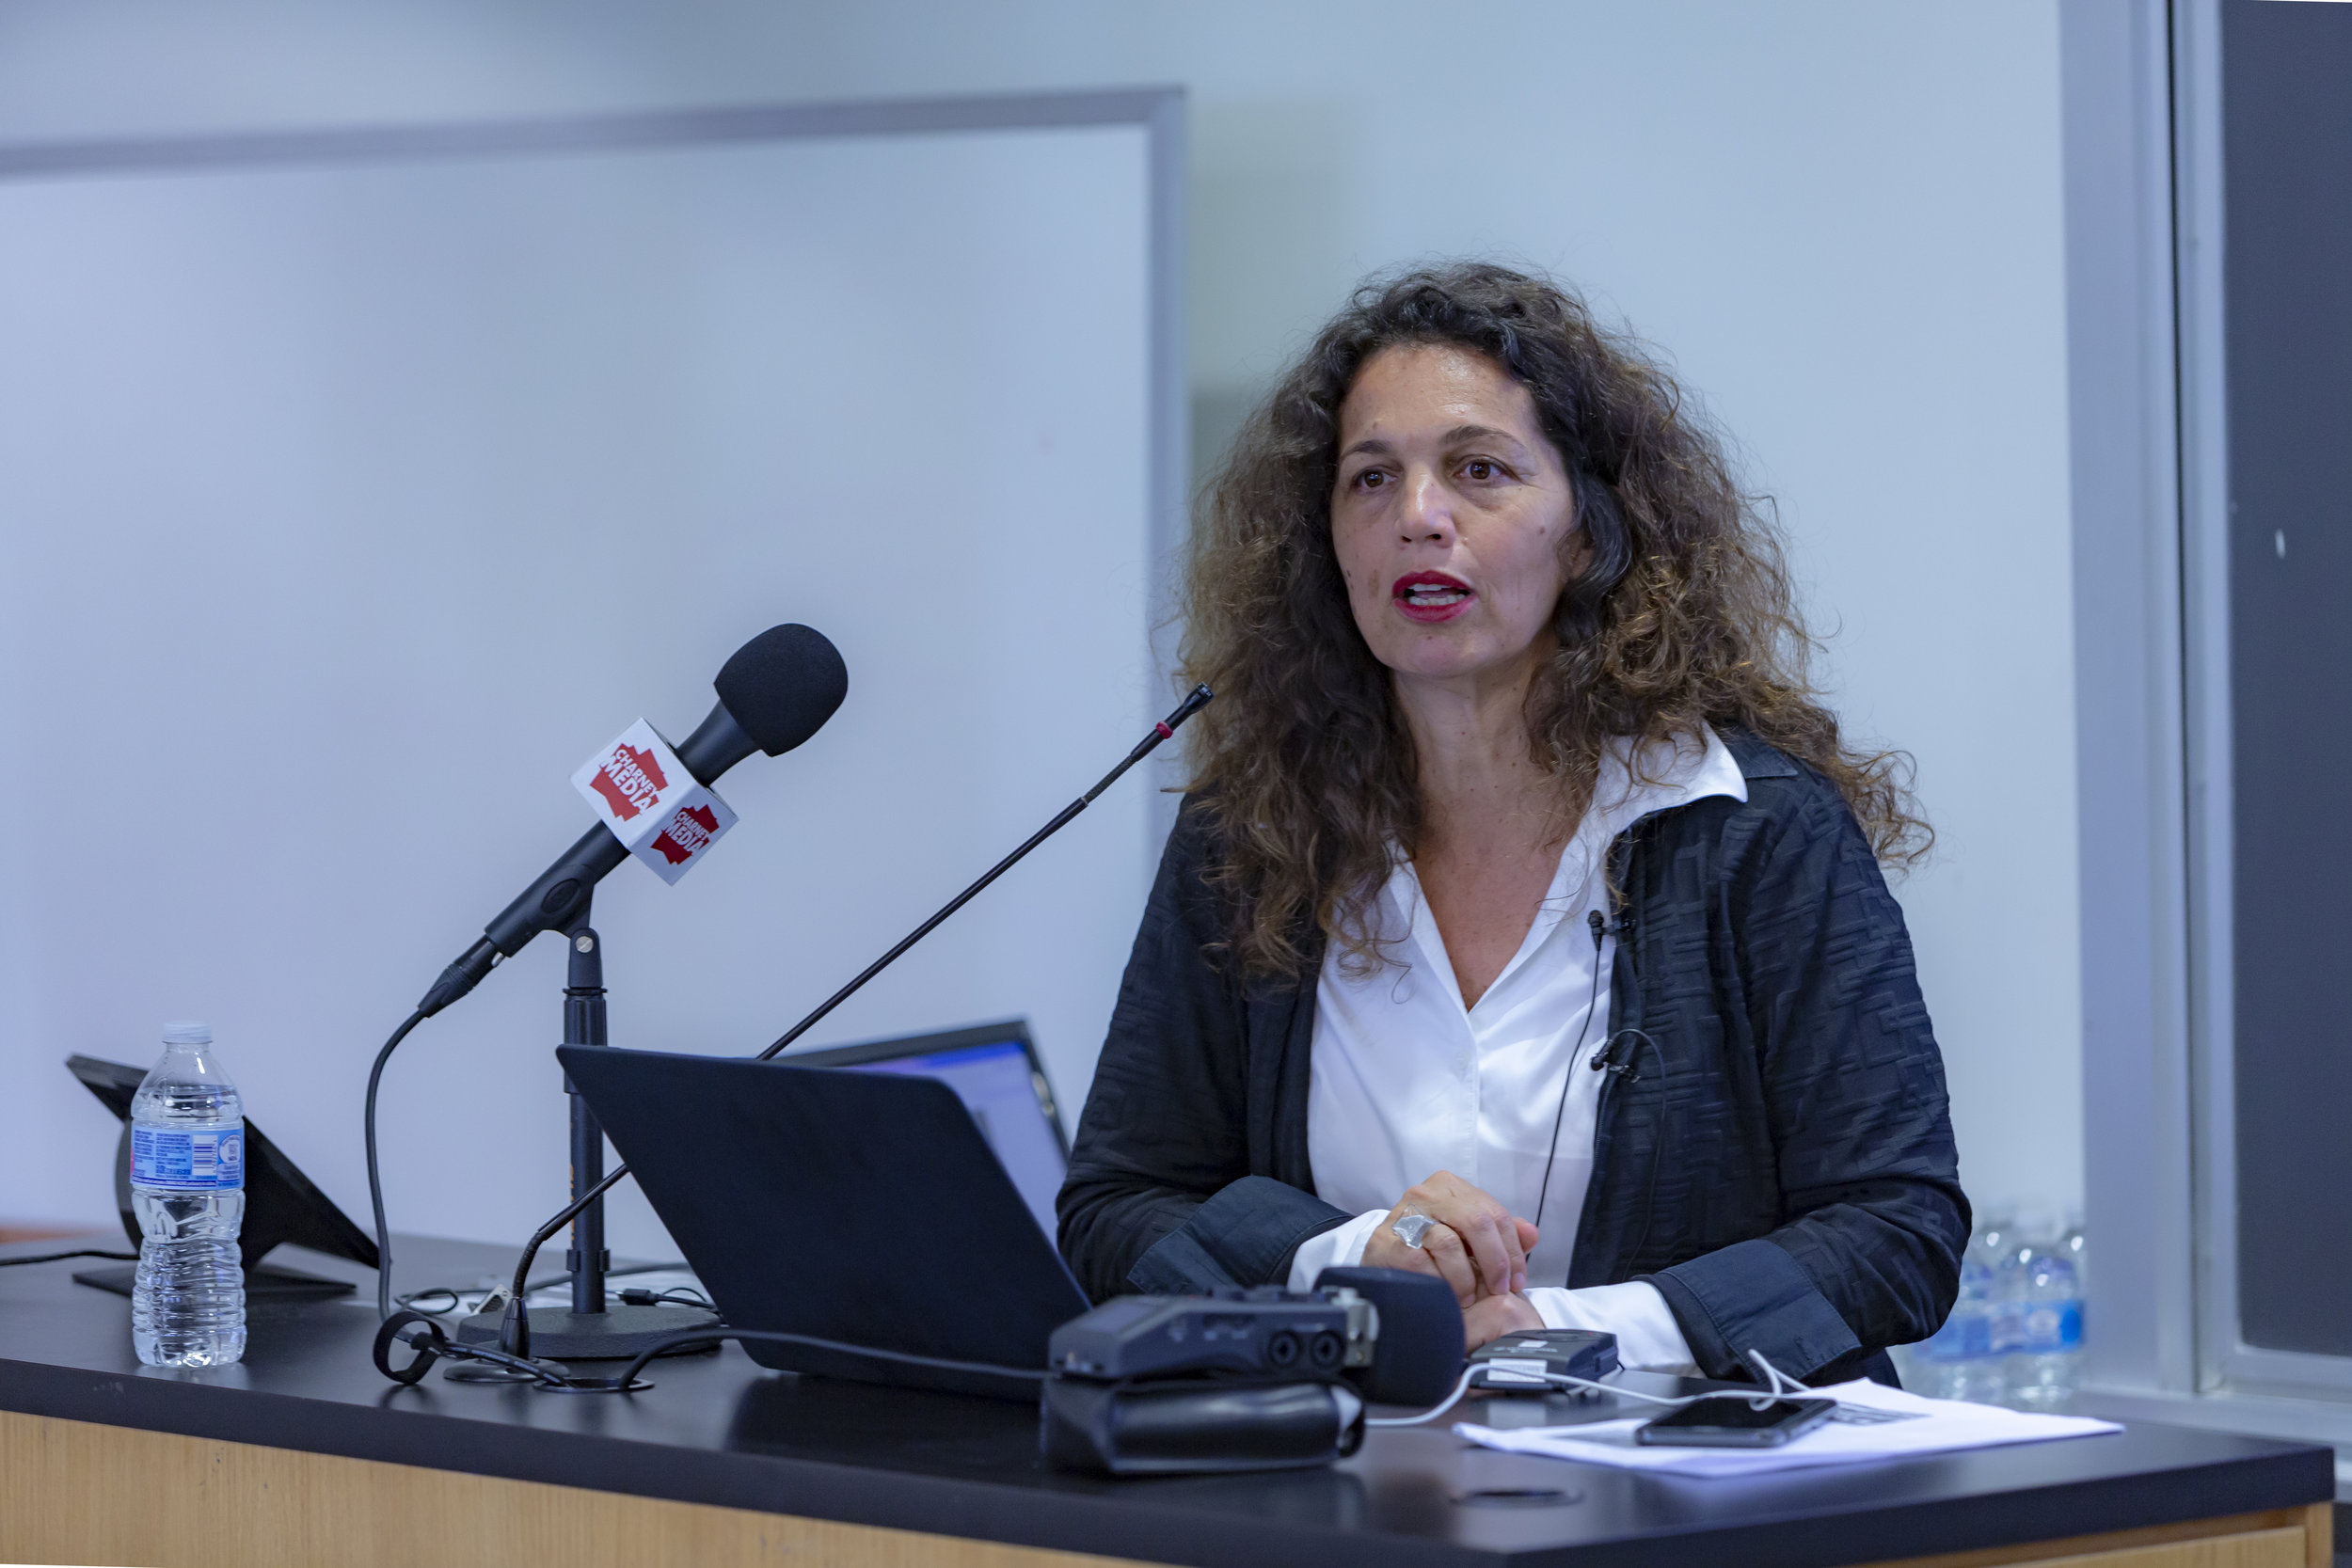 Hila Oren, CEO, The Tel Aviv Foundation; Founder, Tel Aviv Global